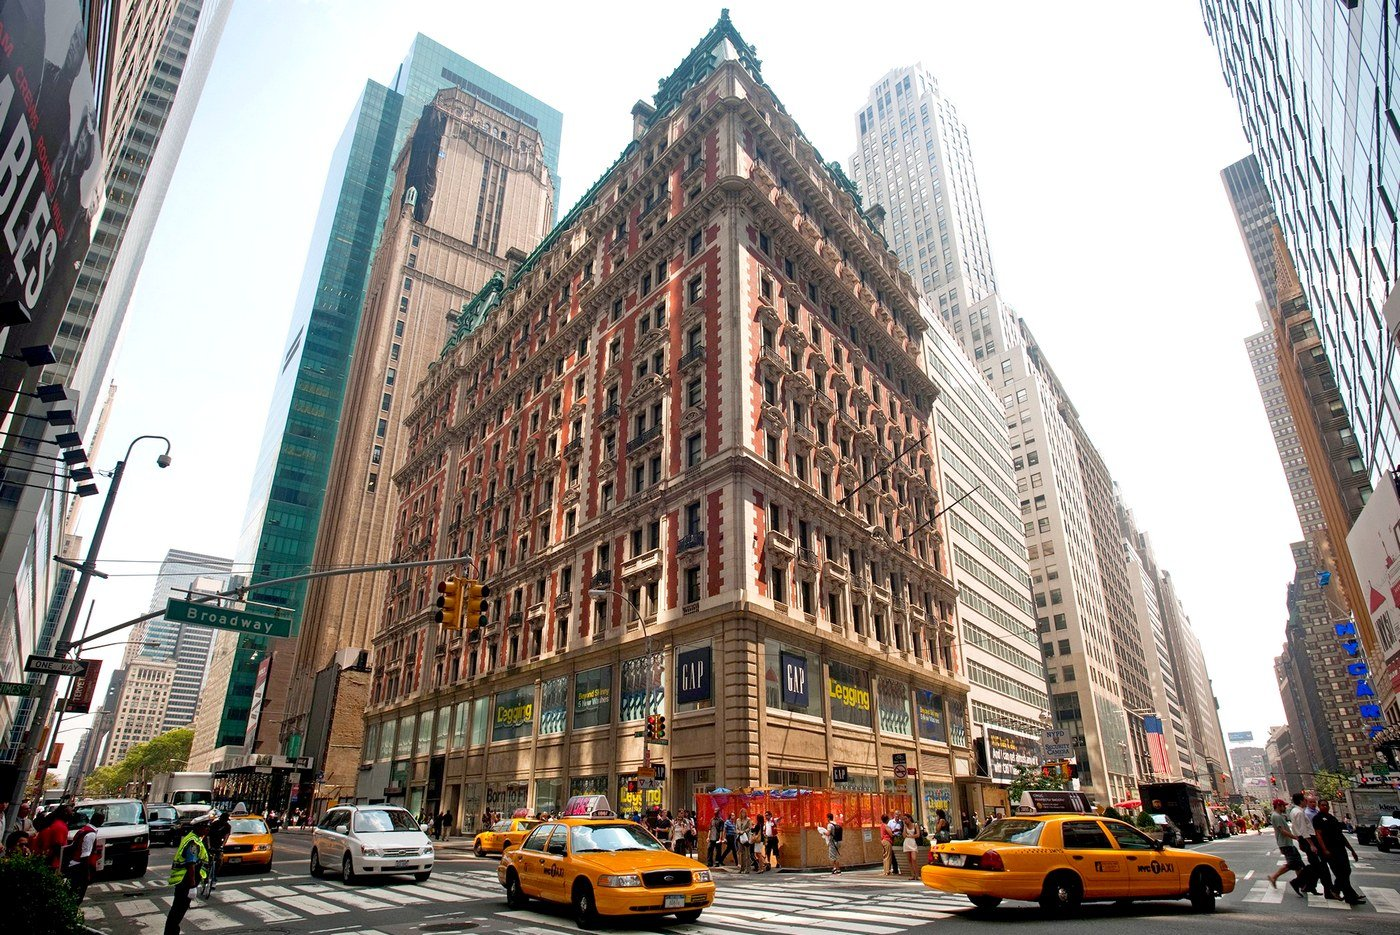 Hotels New York Hotel  Size Length